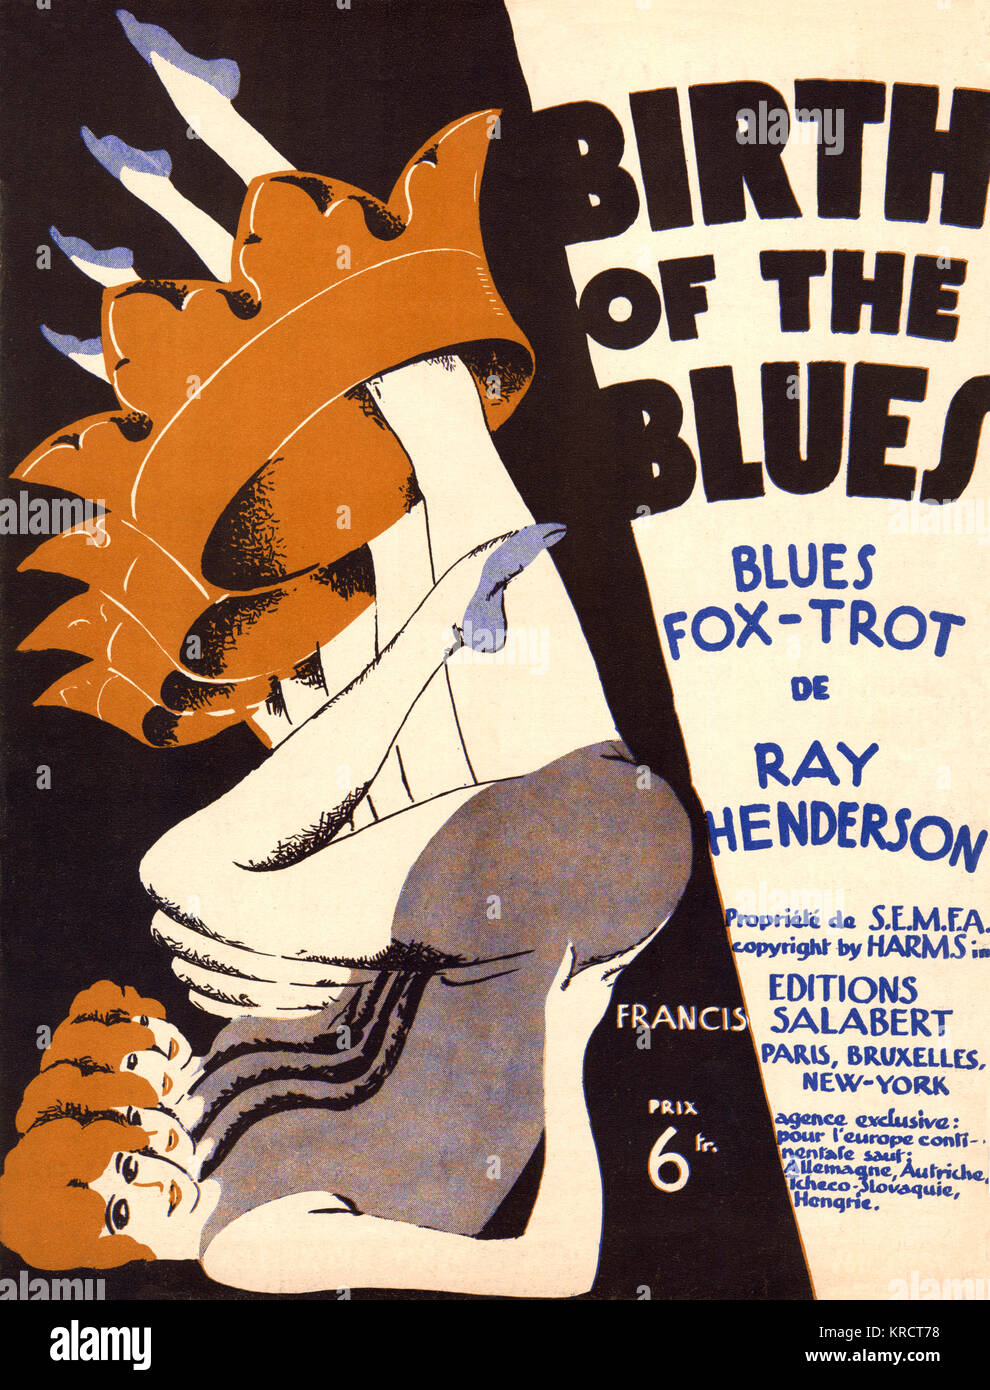 THE BIRTH OF THE BLUES '...and from a jail came the wail of a down-hearted frail, and they played that as part of Stock Photo